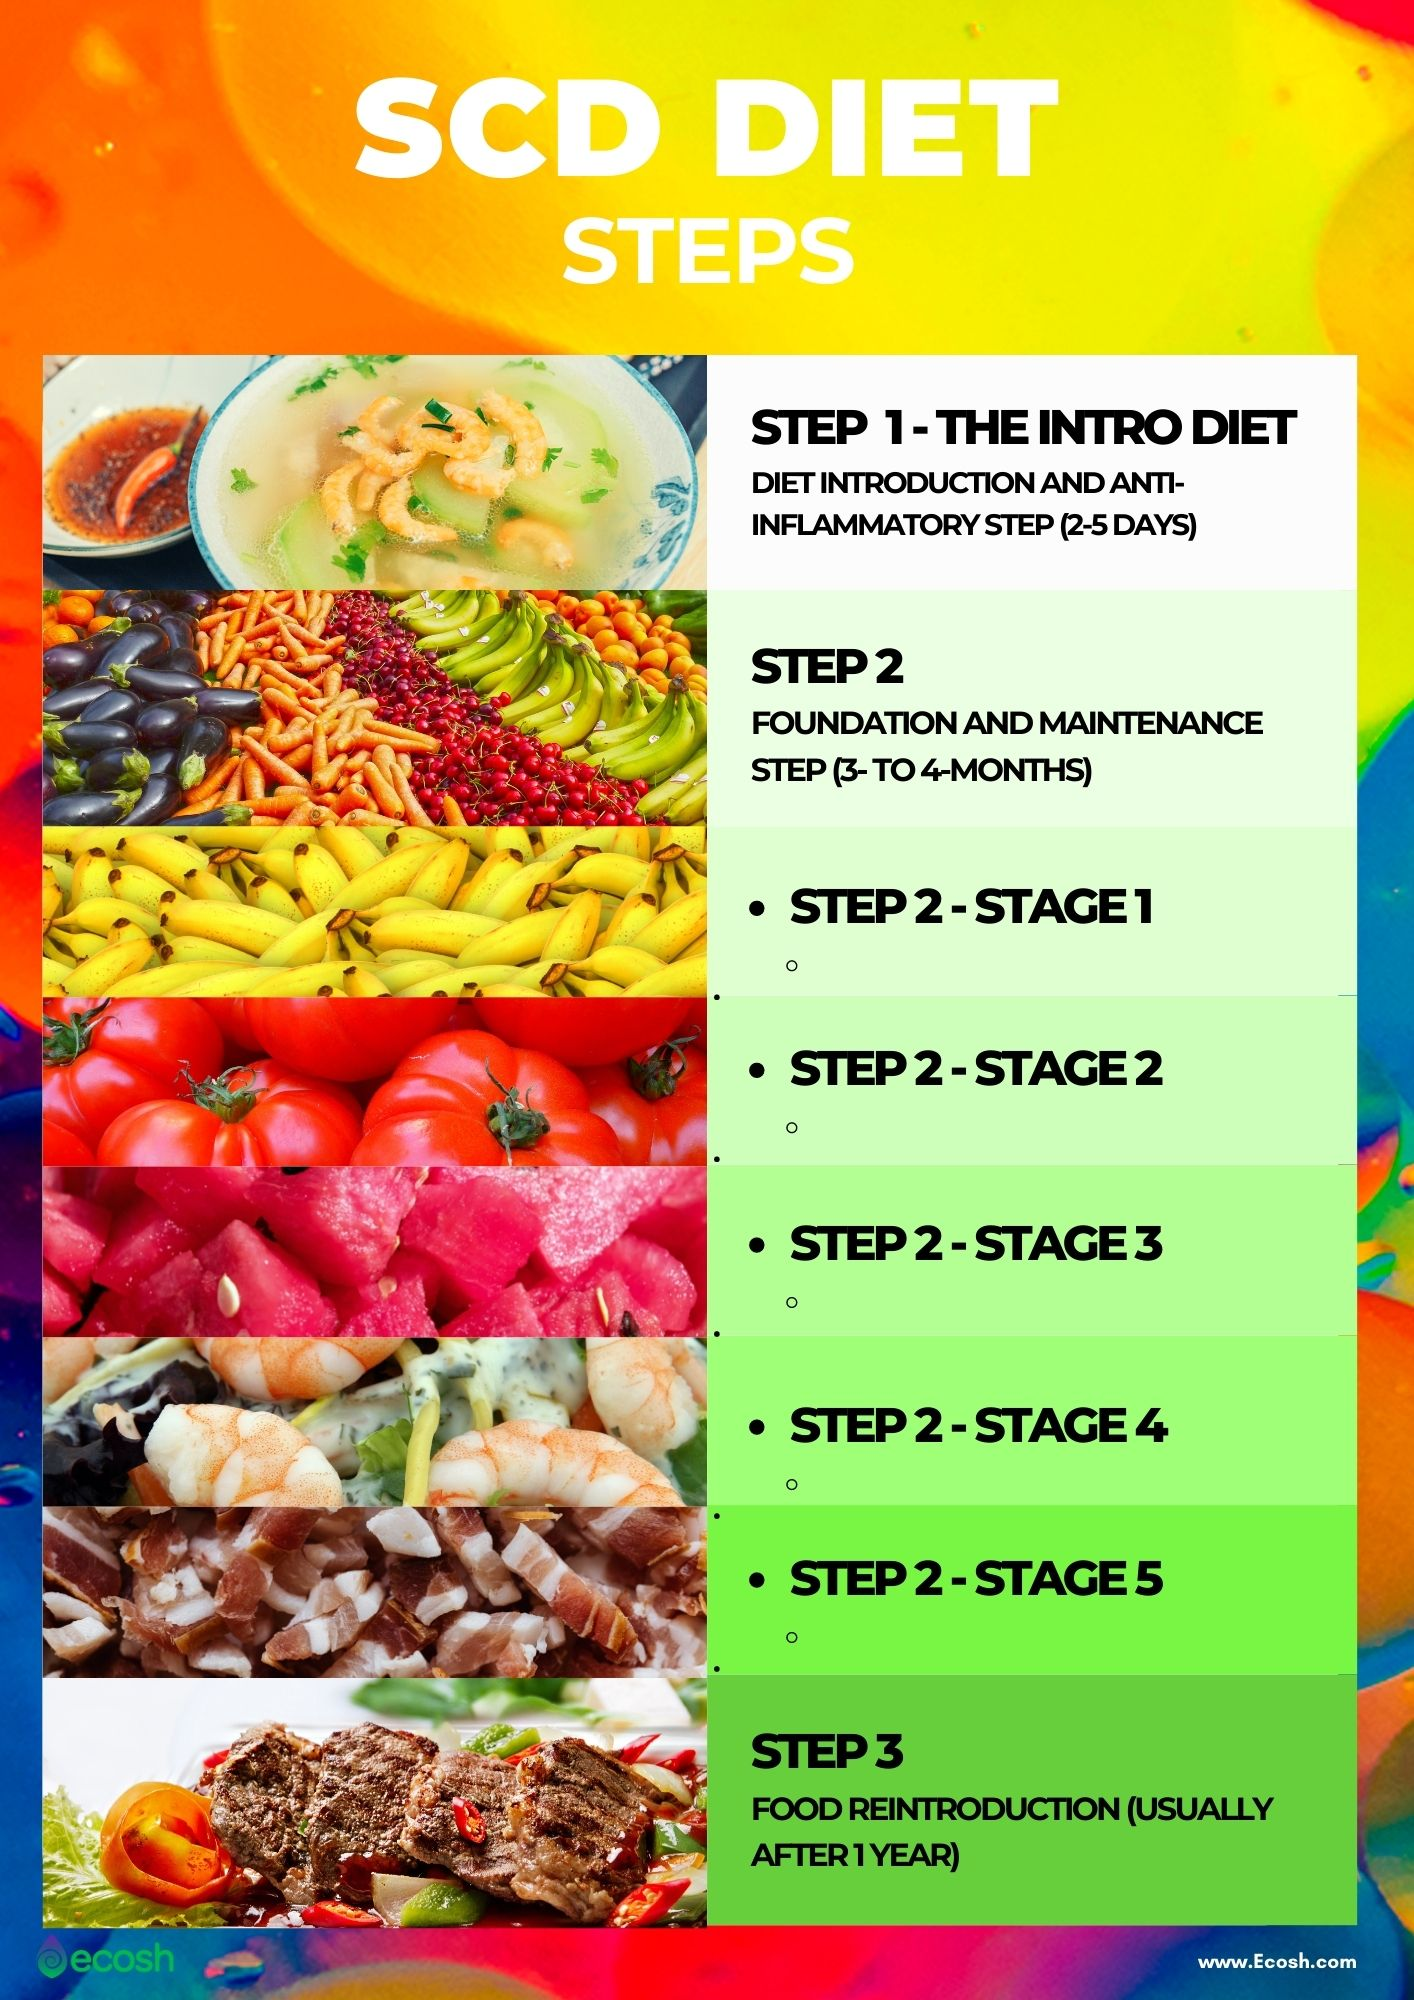 Ecosh_Specific_Carbohydrate_Diet_Steps_SCD_Diet_Steps_SCD_Diet_Stages_Specific_Carbohydrate_Diet_Stages